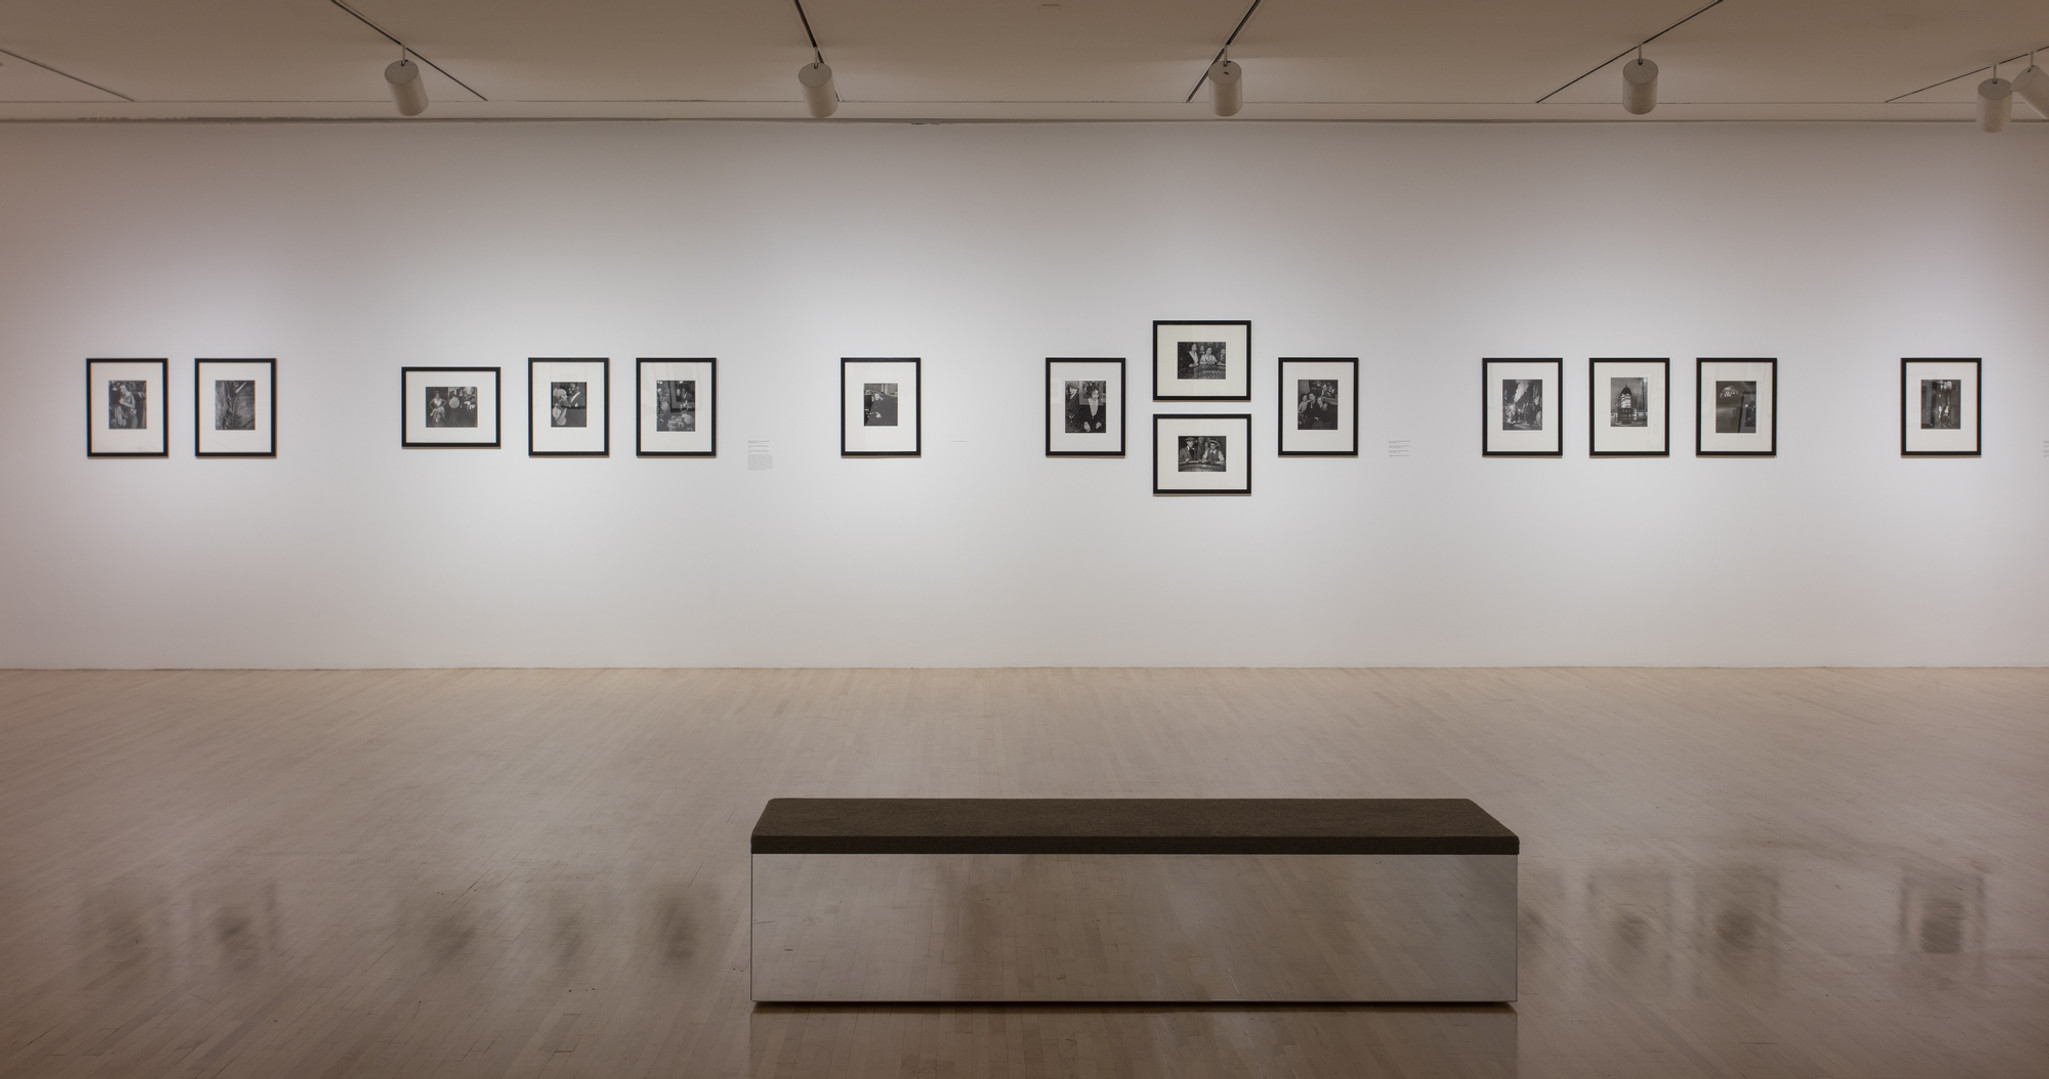 """Installation view of """"Real Worlds: Brassaï, Arbus, Goldin"""", March 4–September 3, 2018 at MOCA Grand Avenue, courtesy of The  Museum of Contemporary Art, Los Angeles, photo by Brian Forrest"""